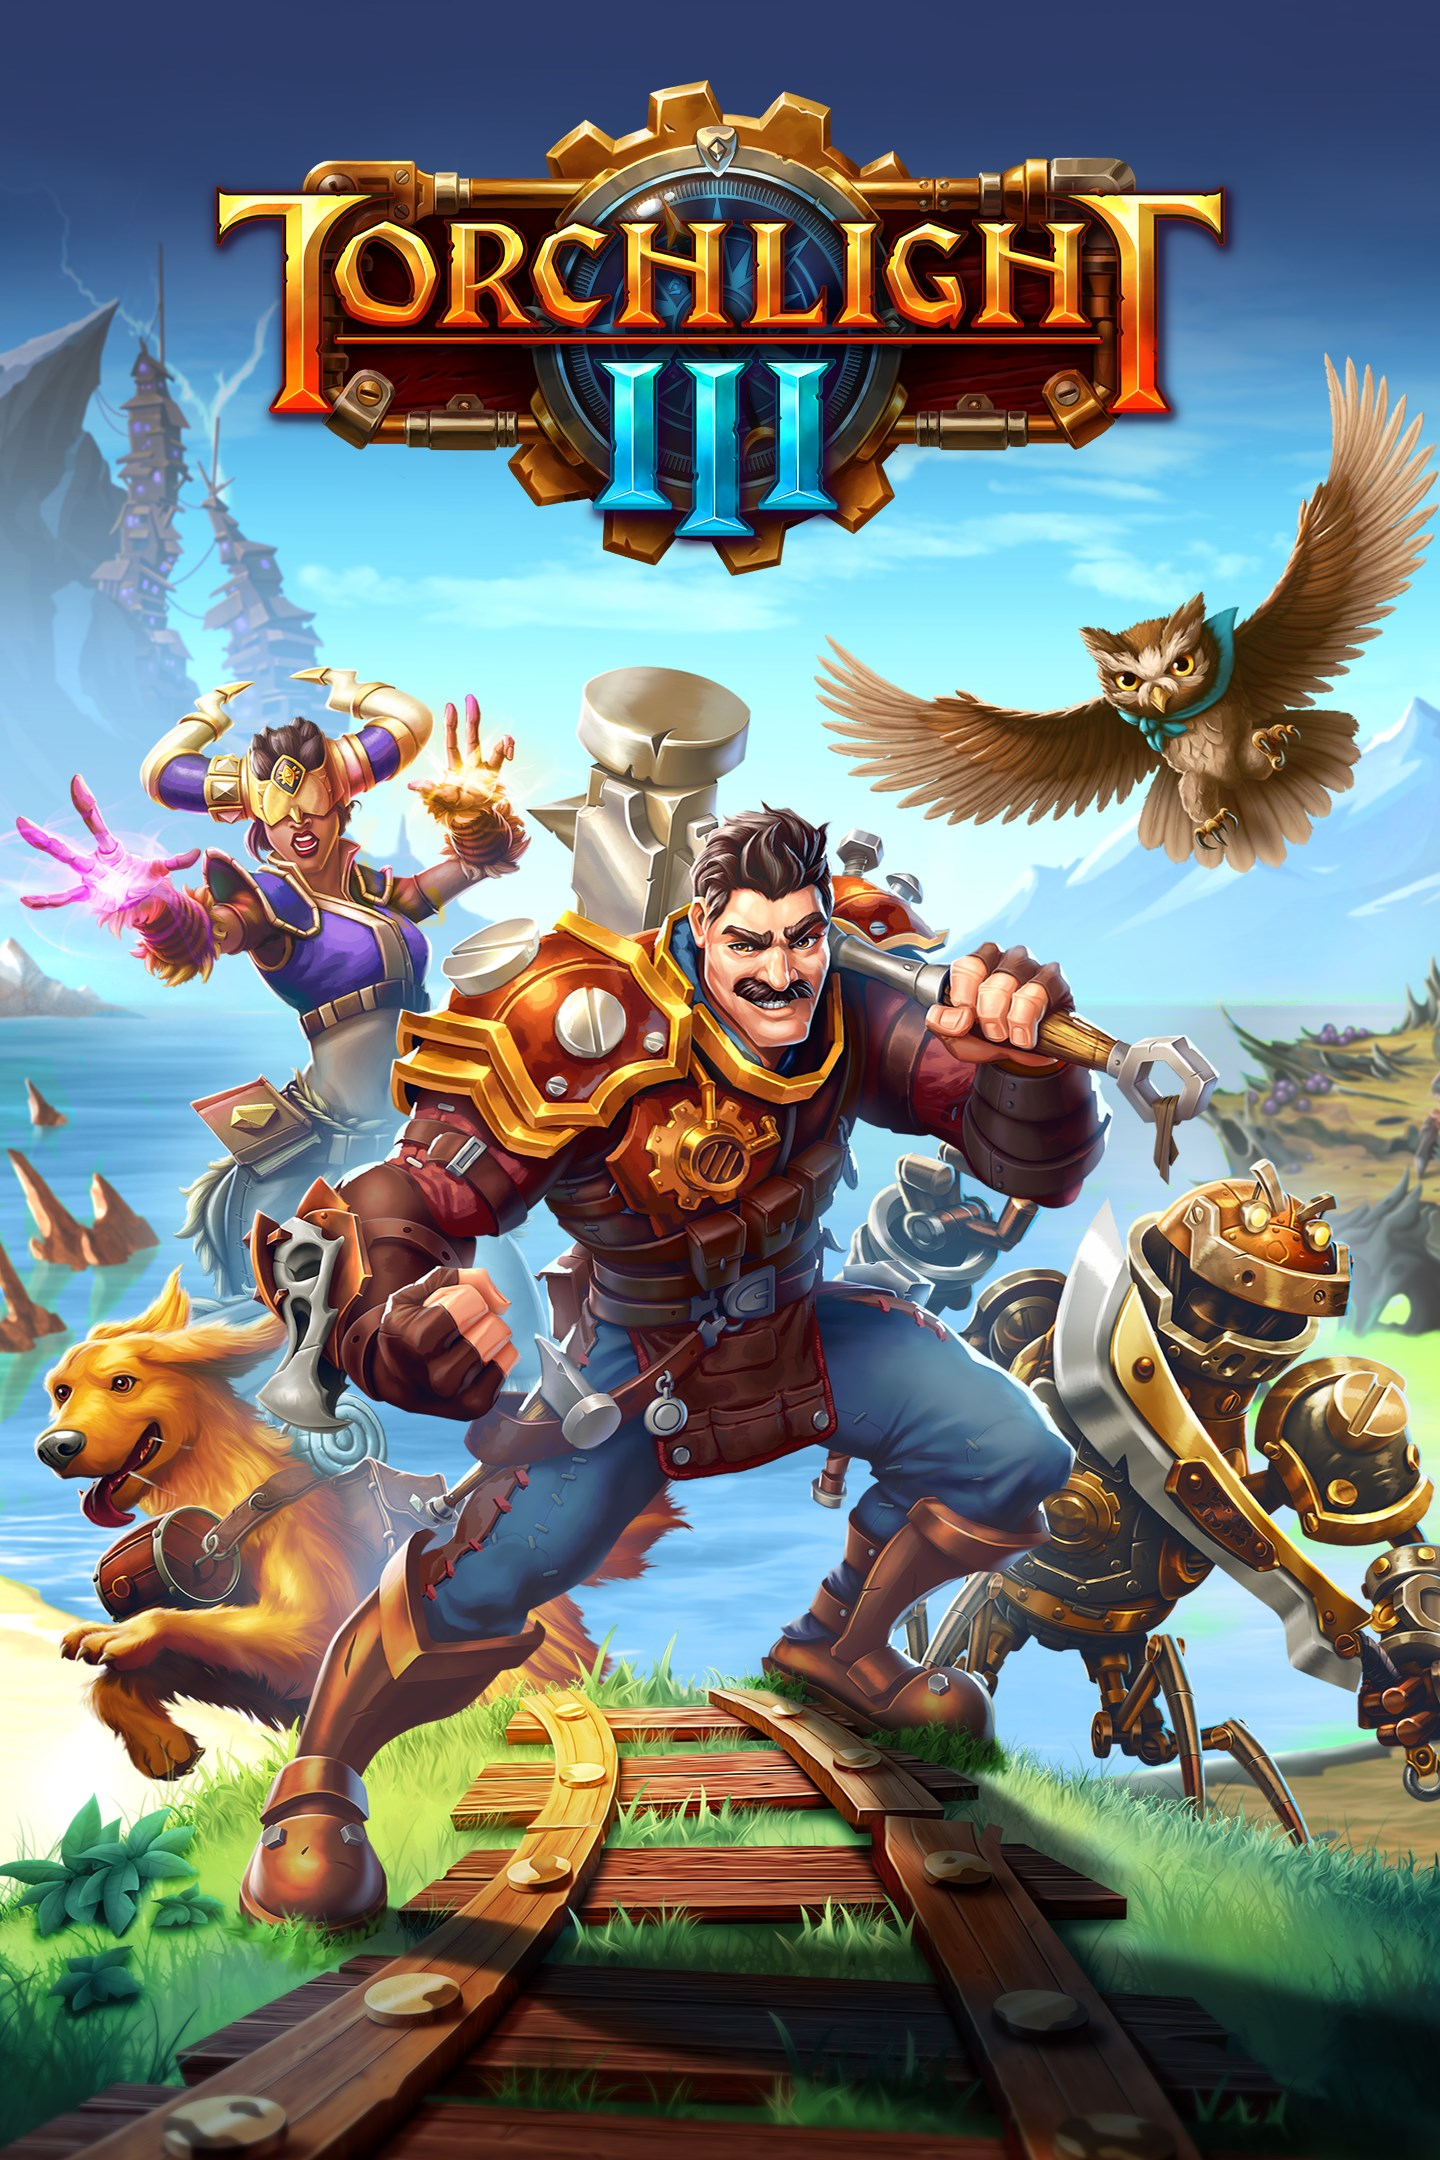 Torchlight III Is Now Available For Xbox One